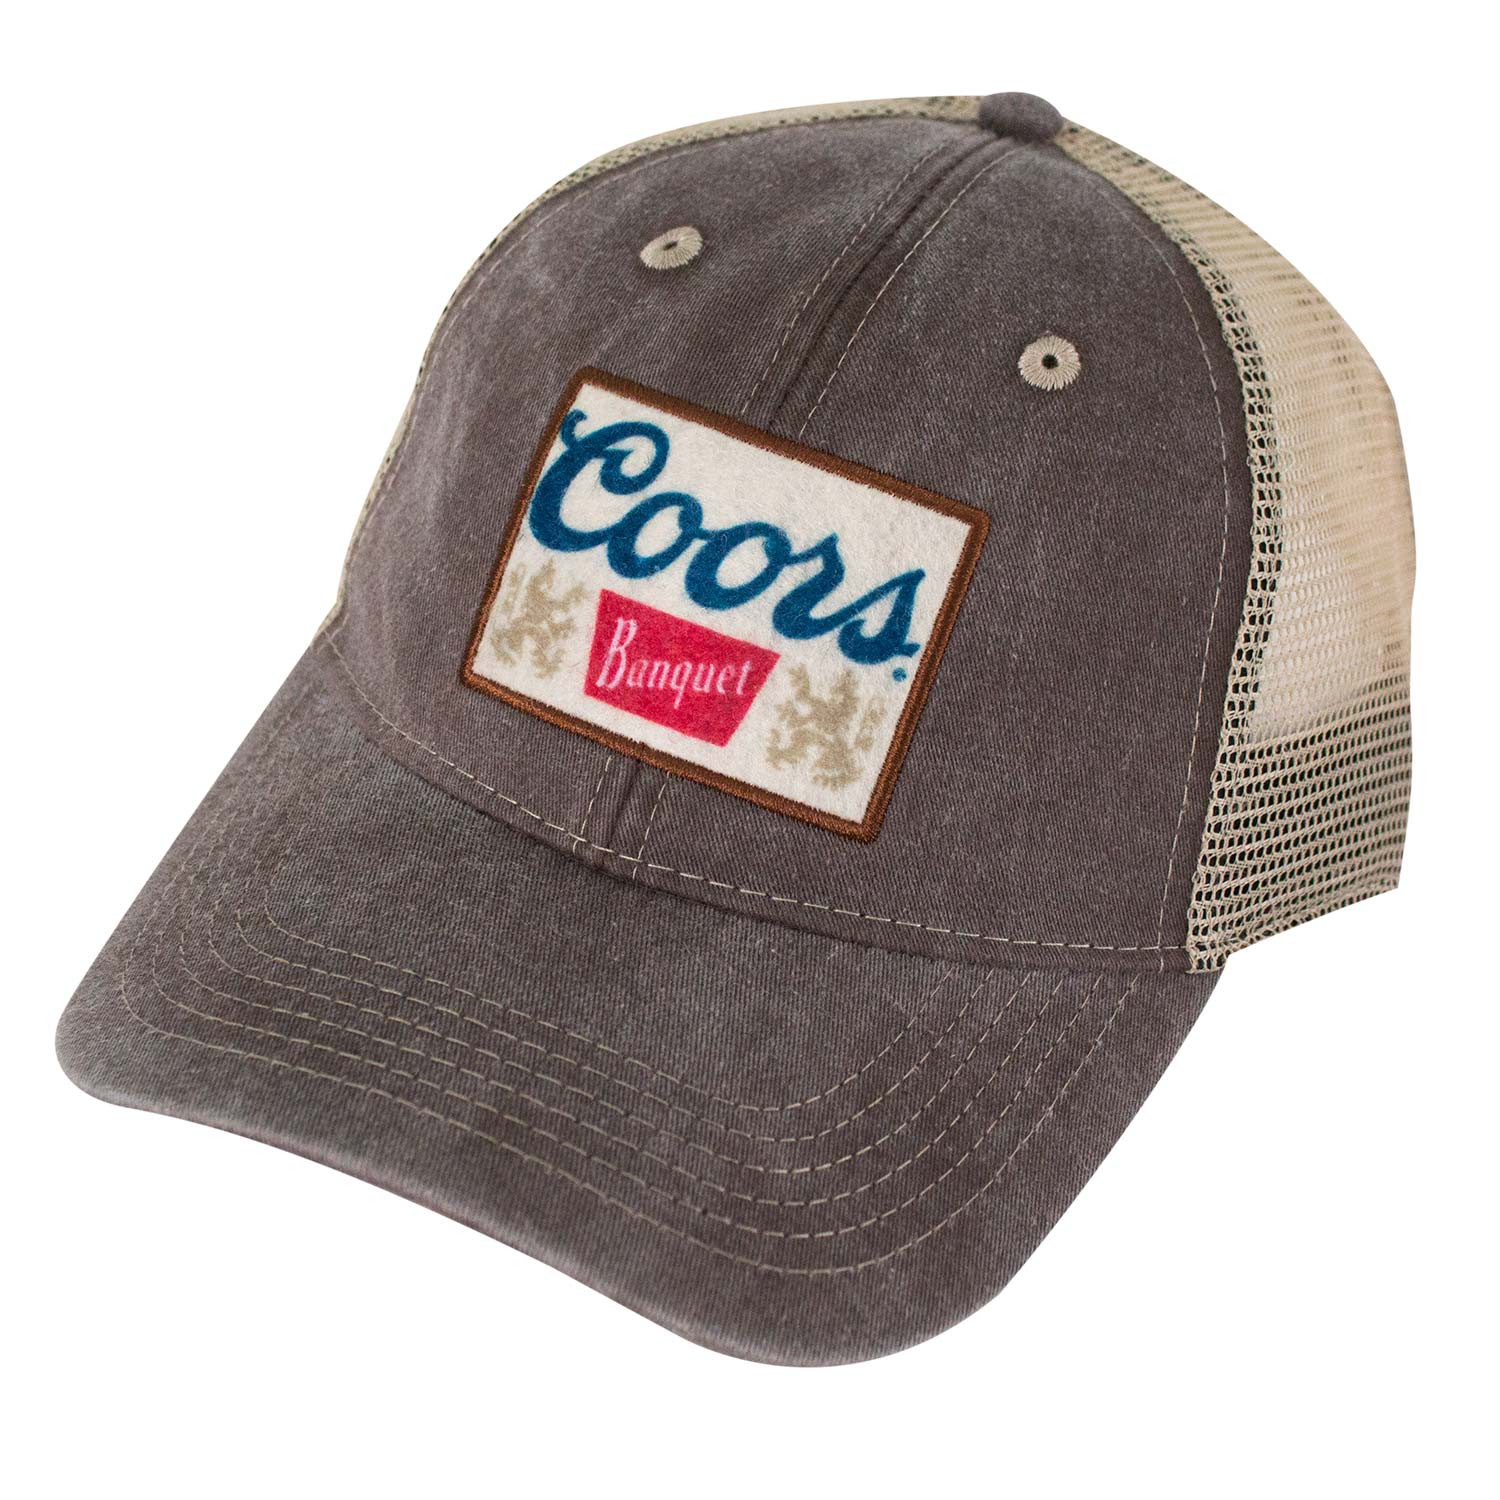 Coors Banquet Brown Patch Logo Mesh Snapback Hat